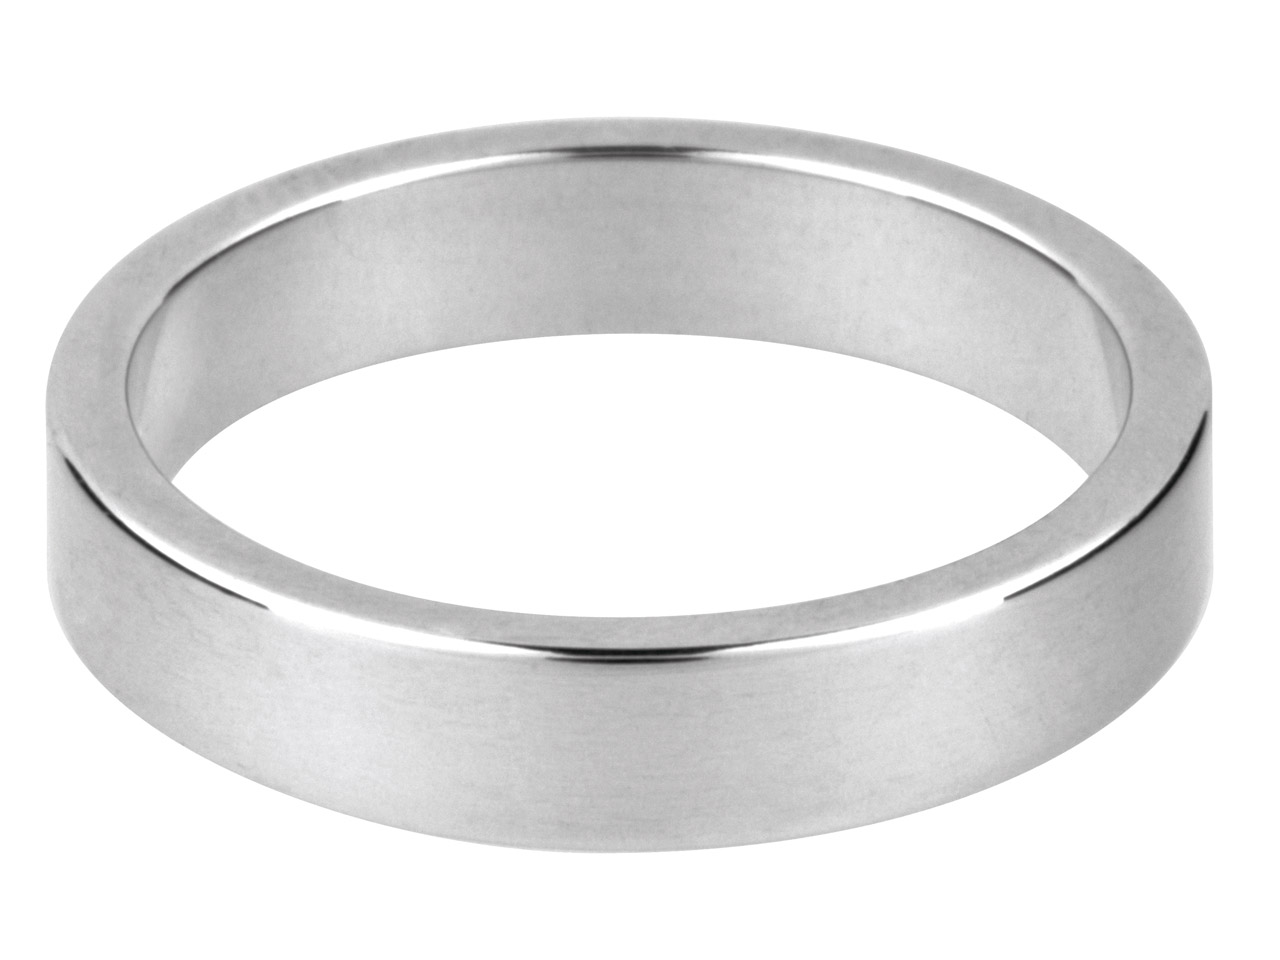 Platinum Flat Wedding Ring 5.0mm T 8.5gms Medium Weight Hallmarked    Wall Thickness 1.21mm